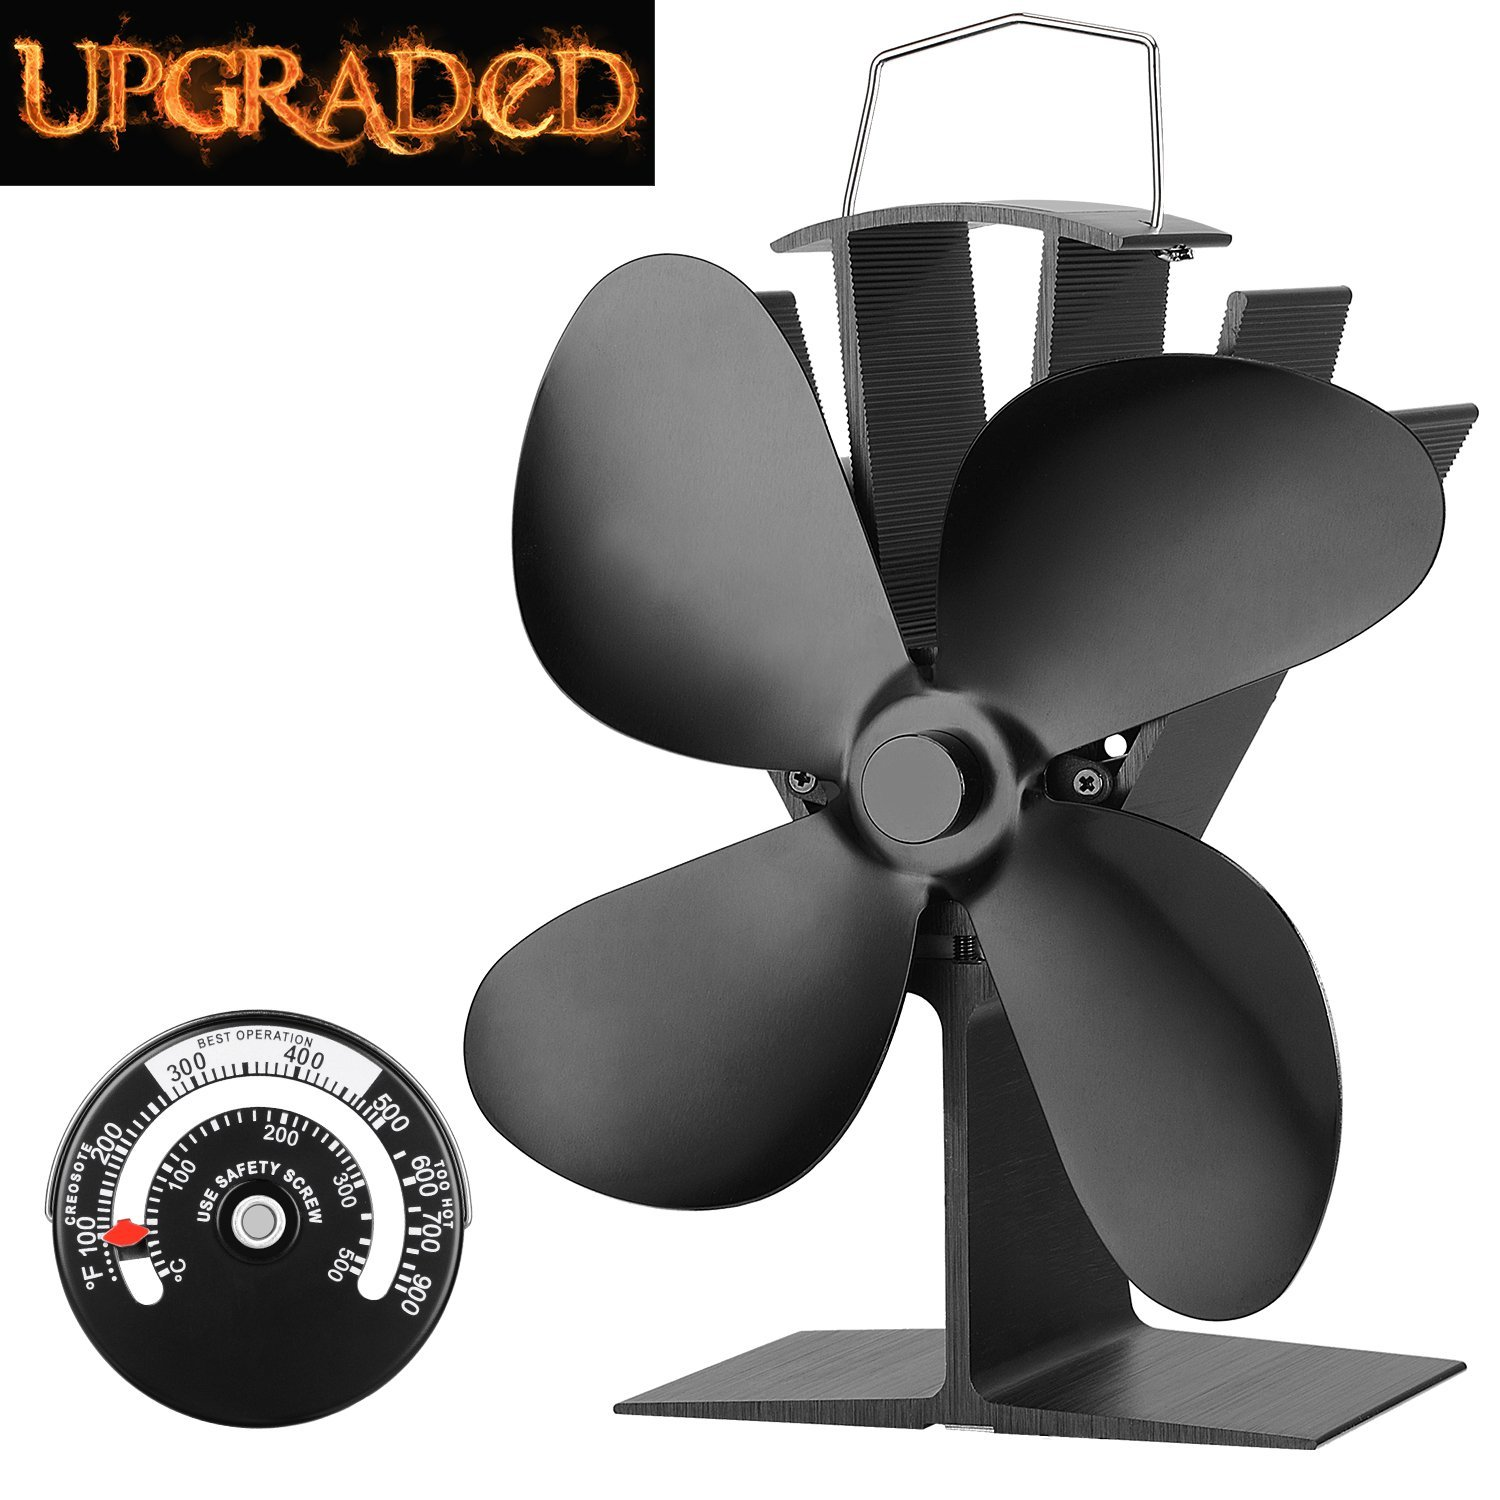 KINDEN 4-Blade Heat Powered Stove Fan for Wood/Log Burner/Fireplace, efficiently circulates Warm air Throughout The Room